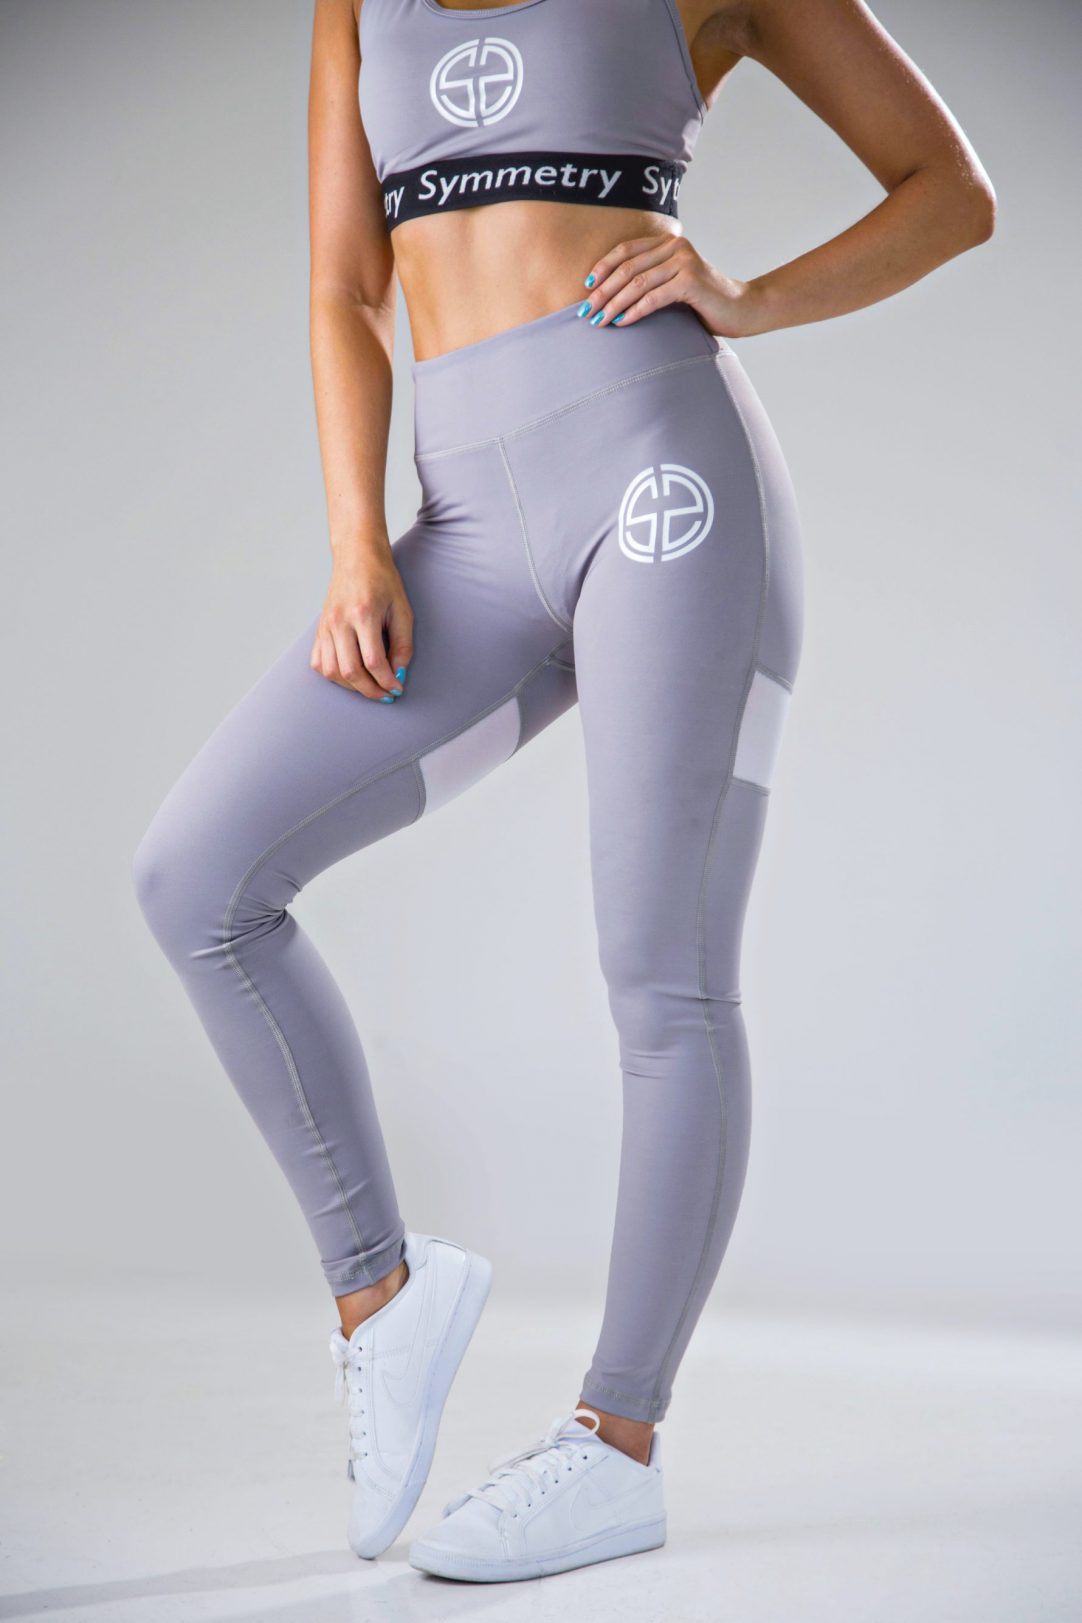 womens high waisted leggings in grey with mesh panels 2 | womens sports bra in grey | symmetry athletics